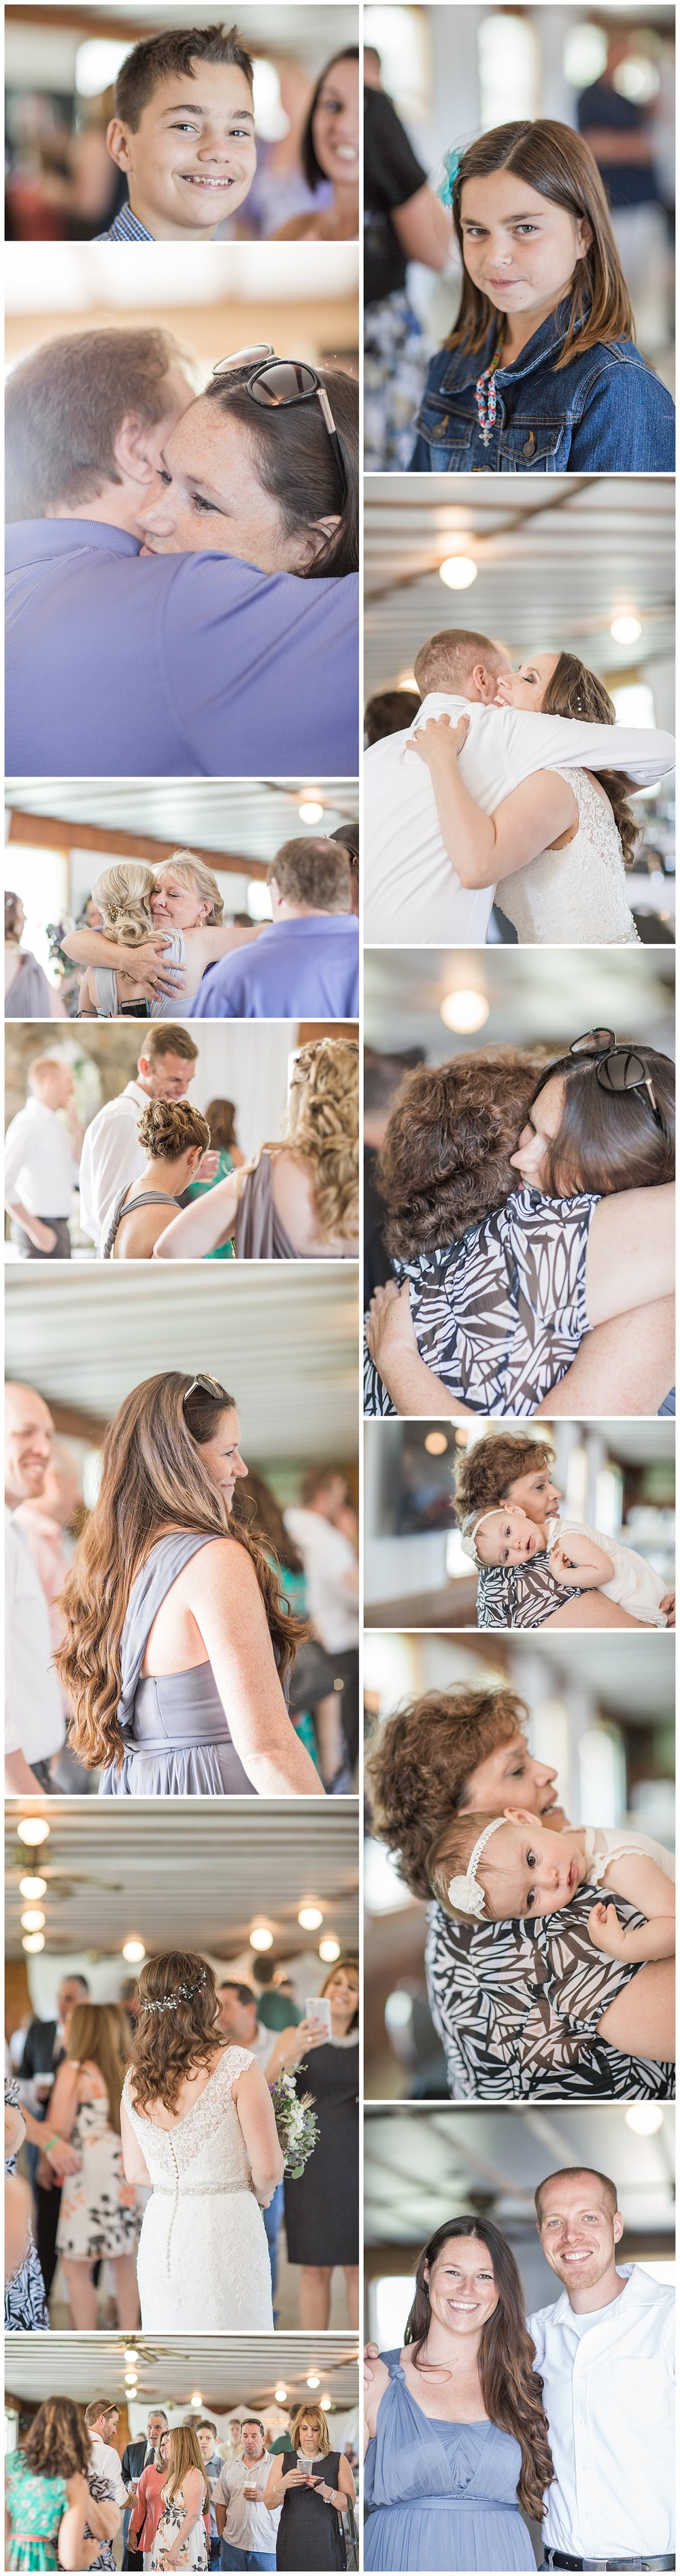 The Martin wedding - Lass & Beau-680_Buffalo wedding photography.jpg